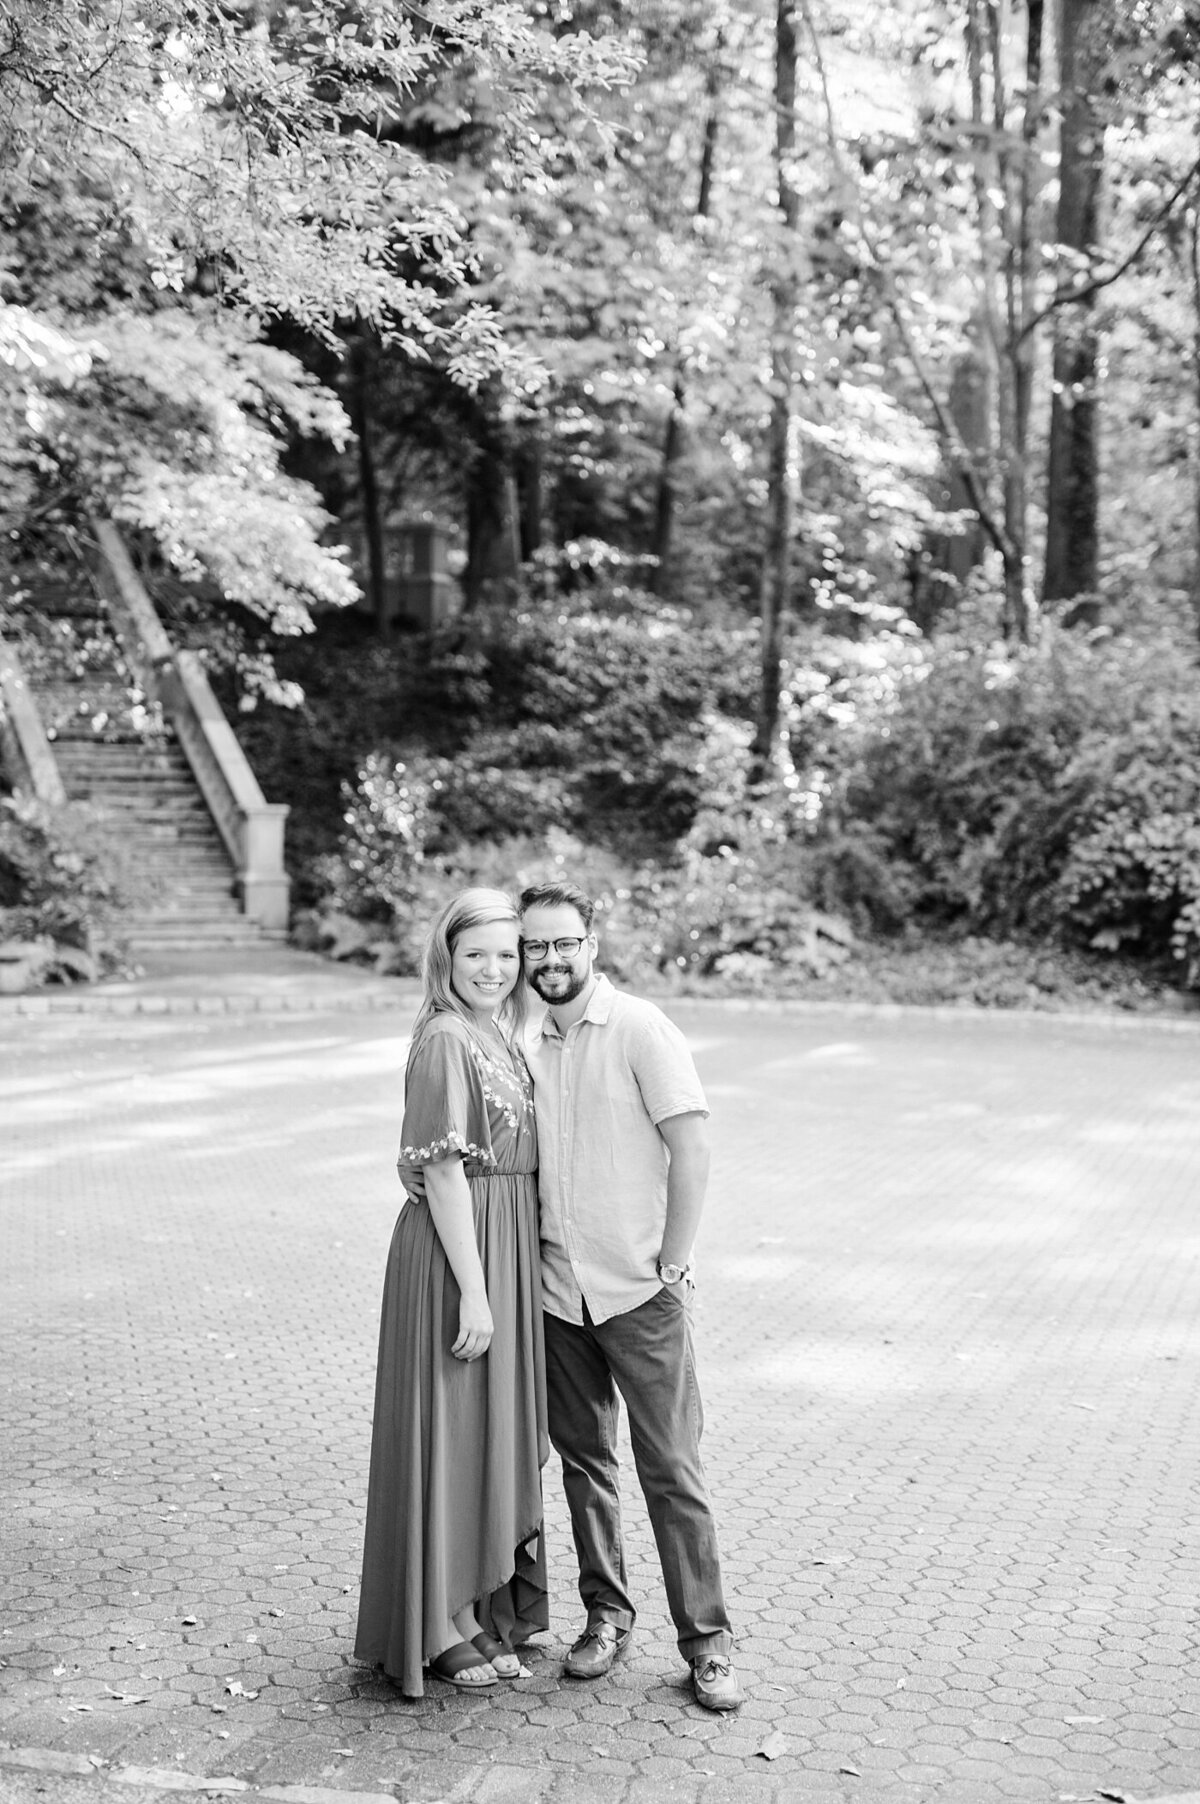 cator-woolford-gardens-engagement-wedding-photographer-laura-barnes-photo-shackelford-25